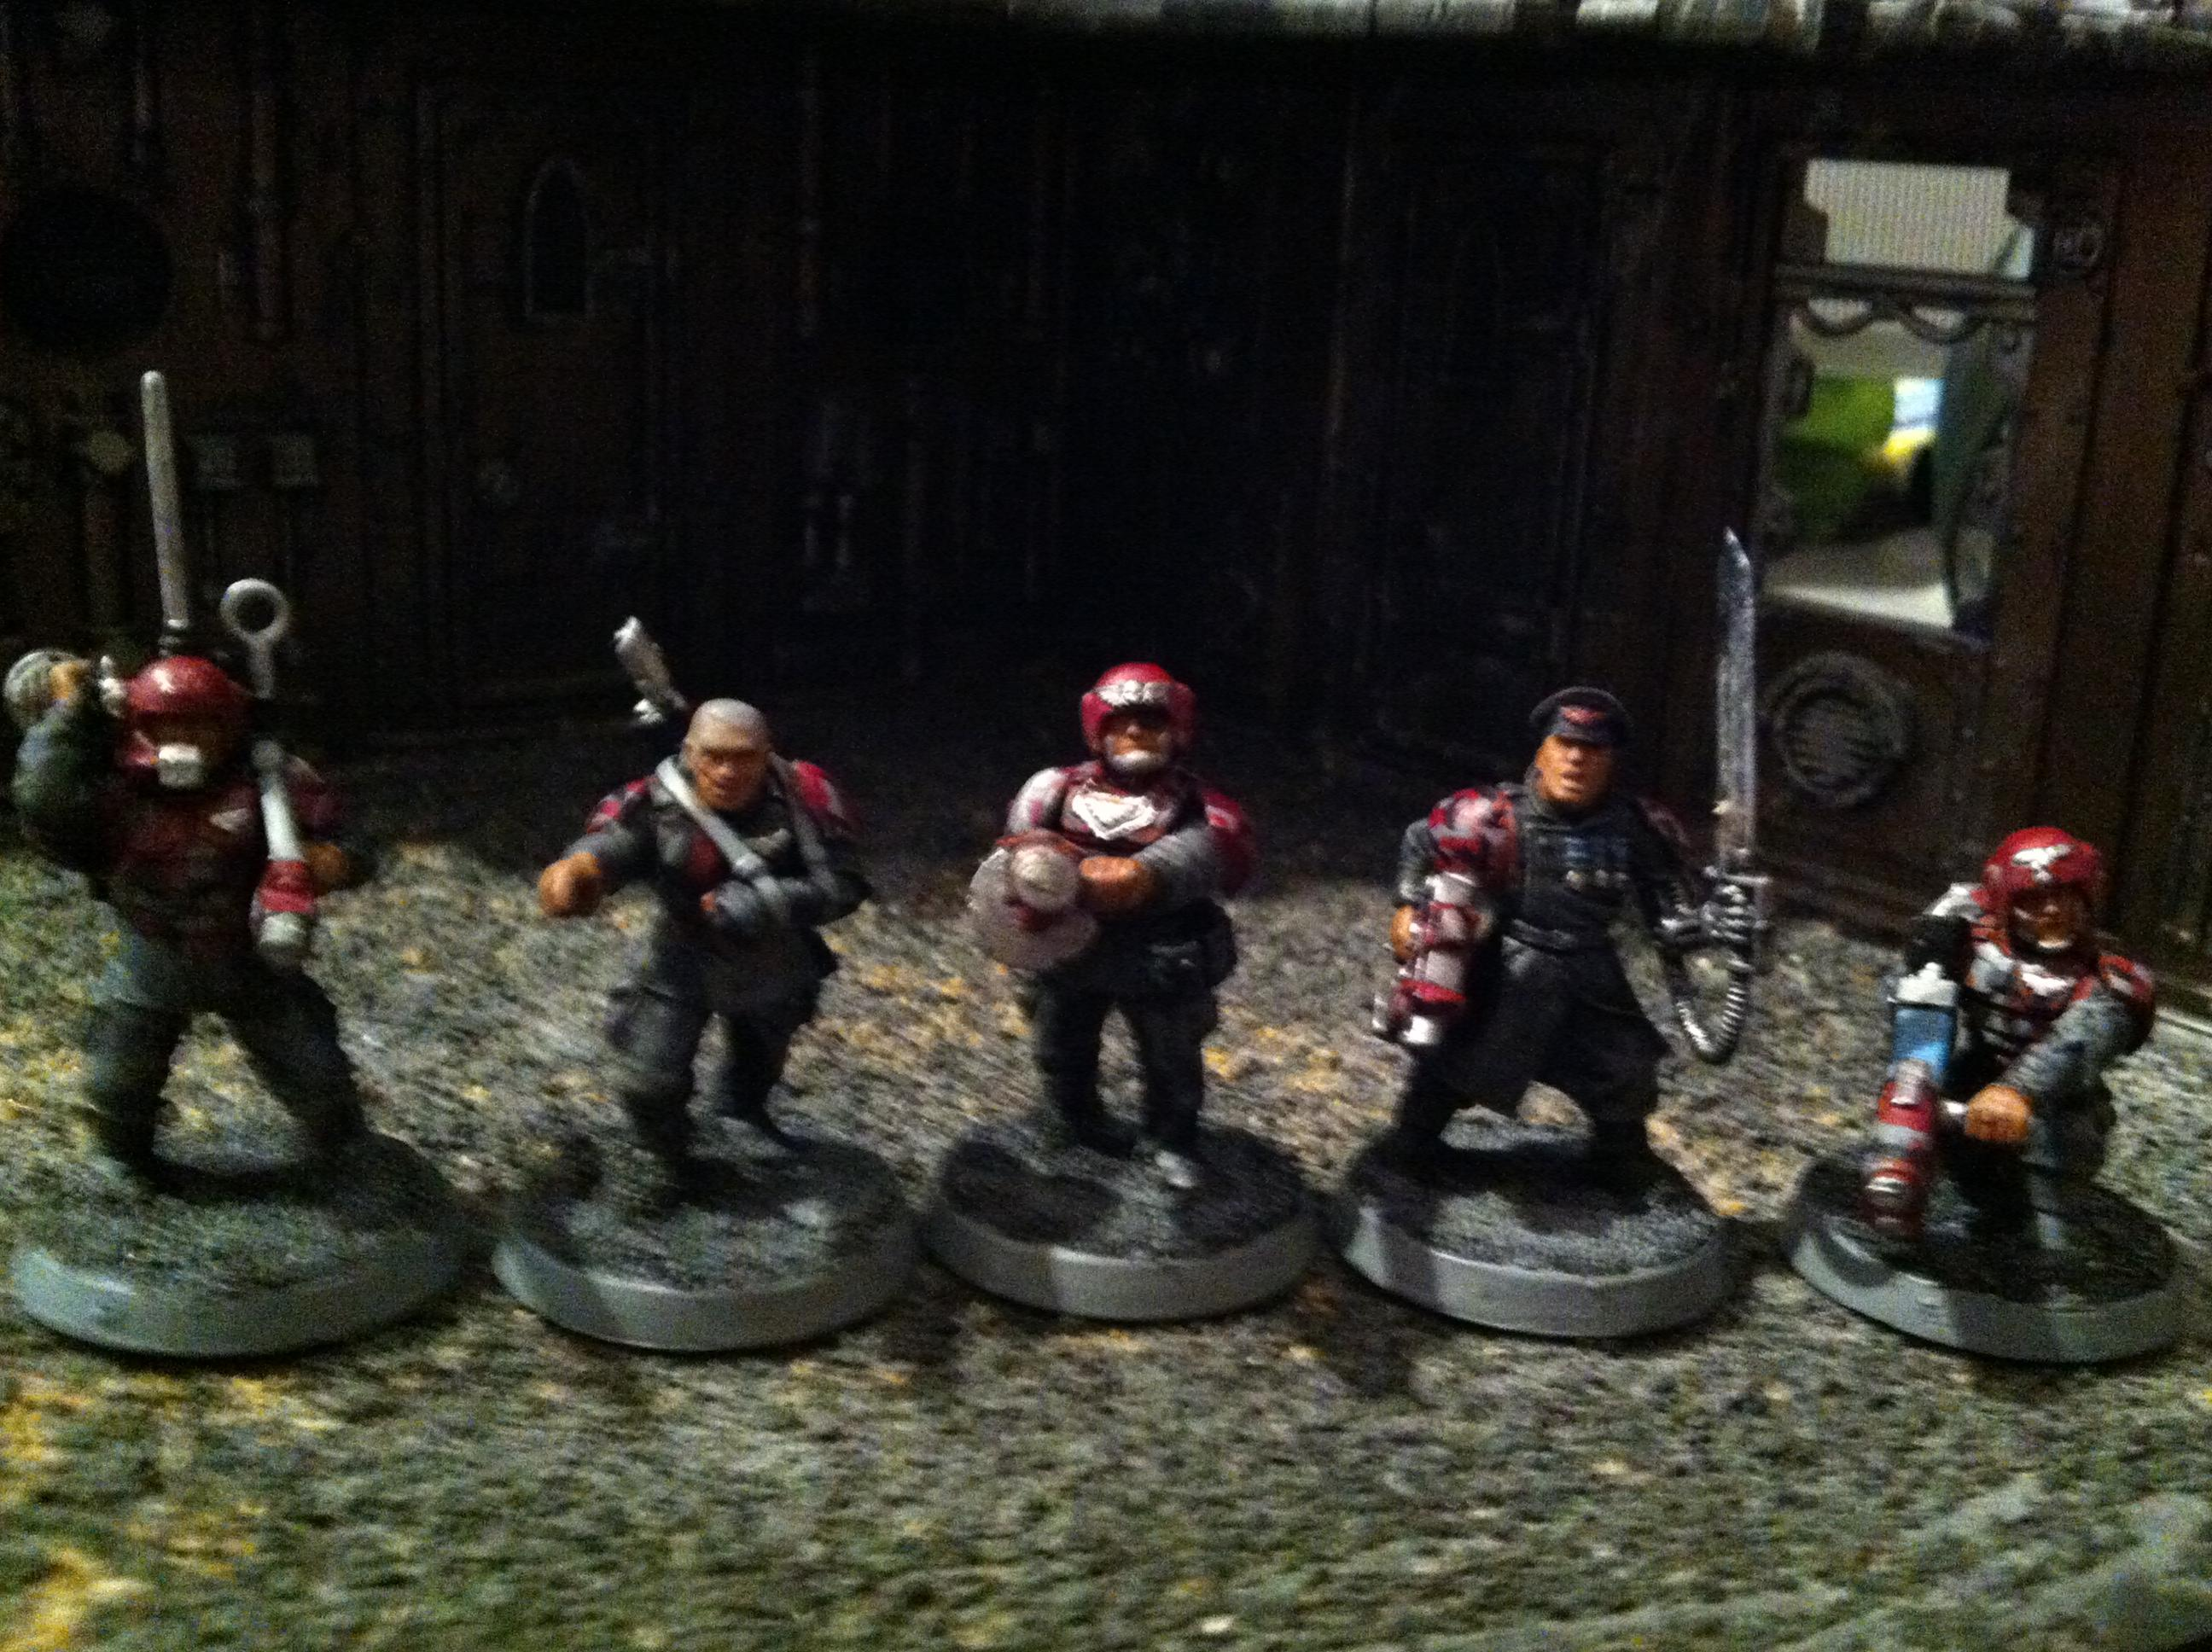 Camouflage, Ccs, Command, Imperial Guard, Oc, Red, Urban, Veteran